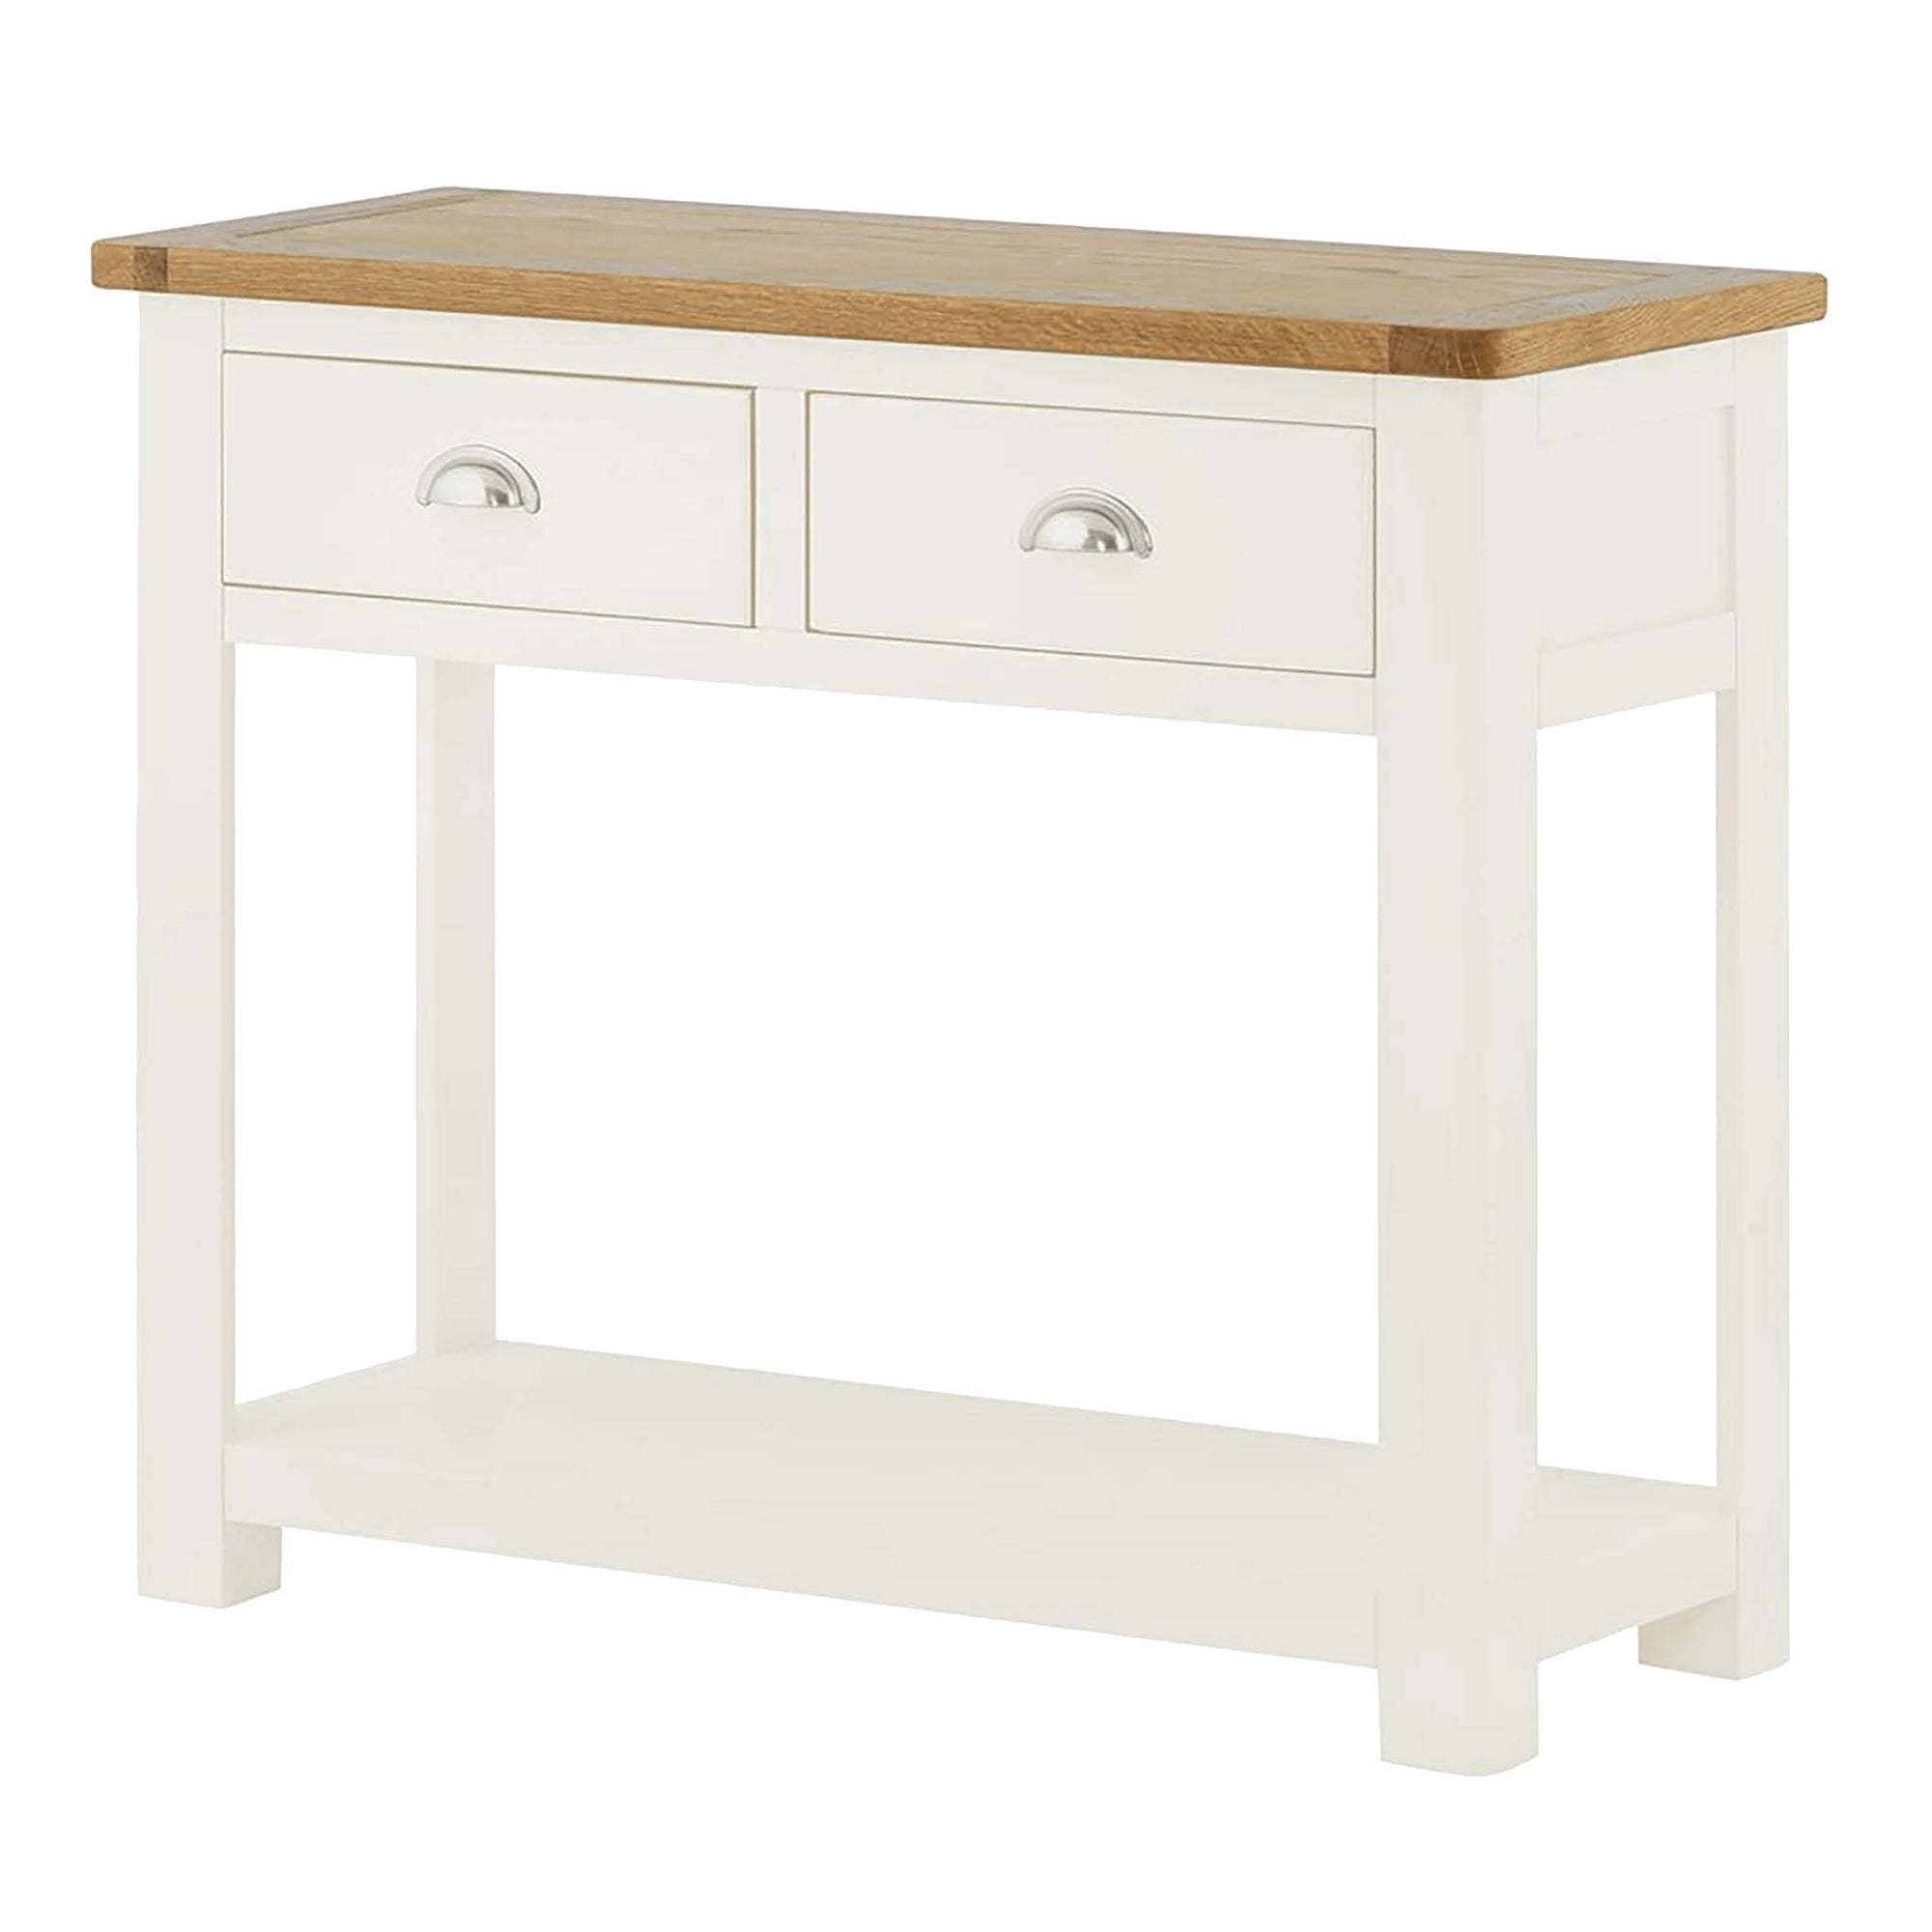 The Padstow White Wooden Hall Console Table with Oak Top from Roseland Furniture